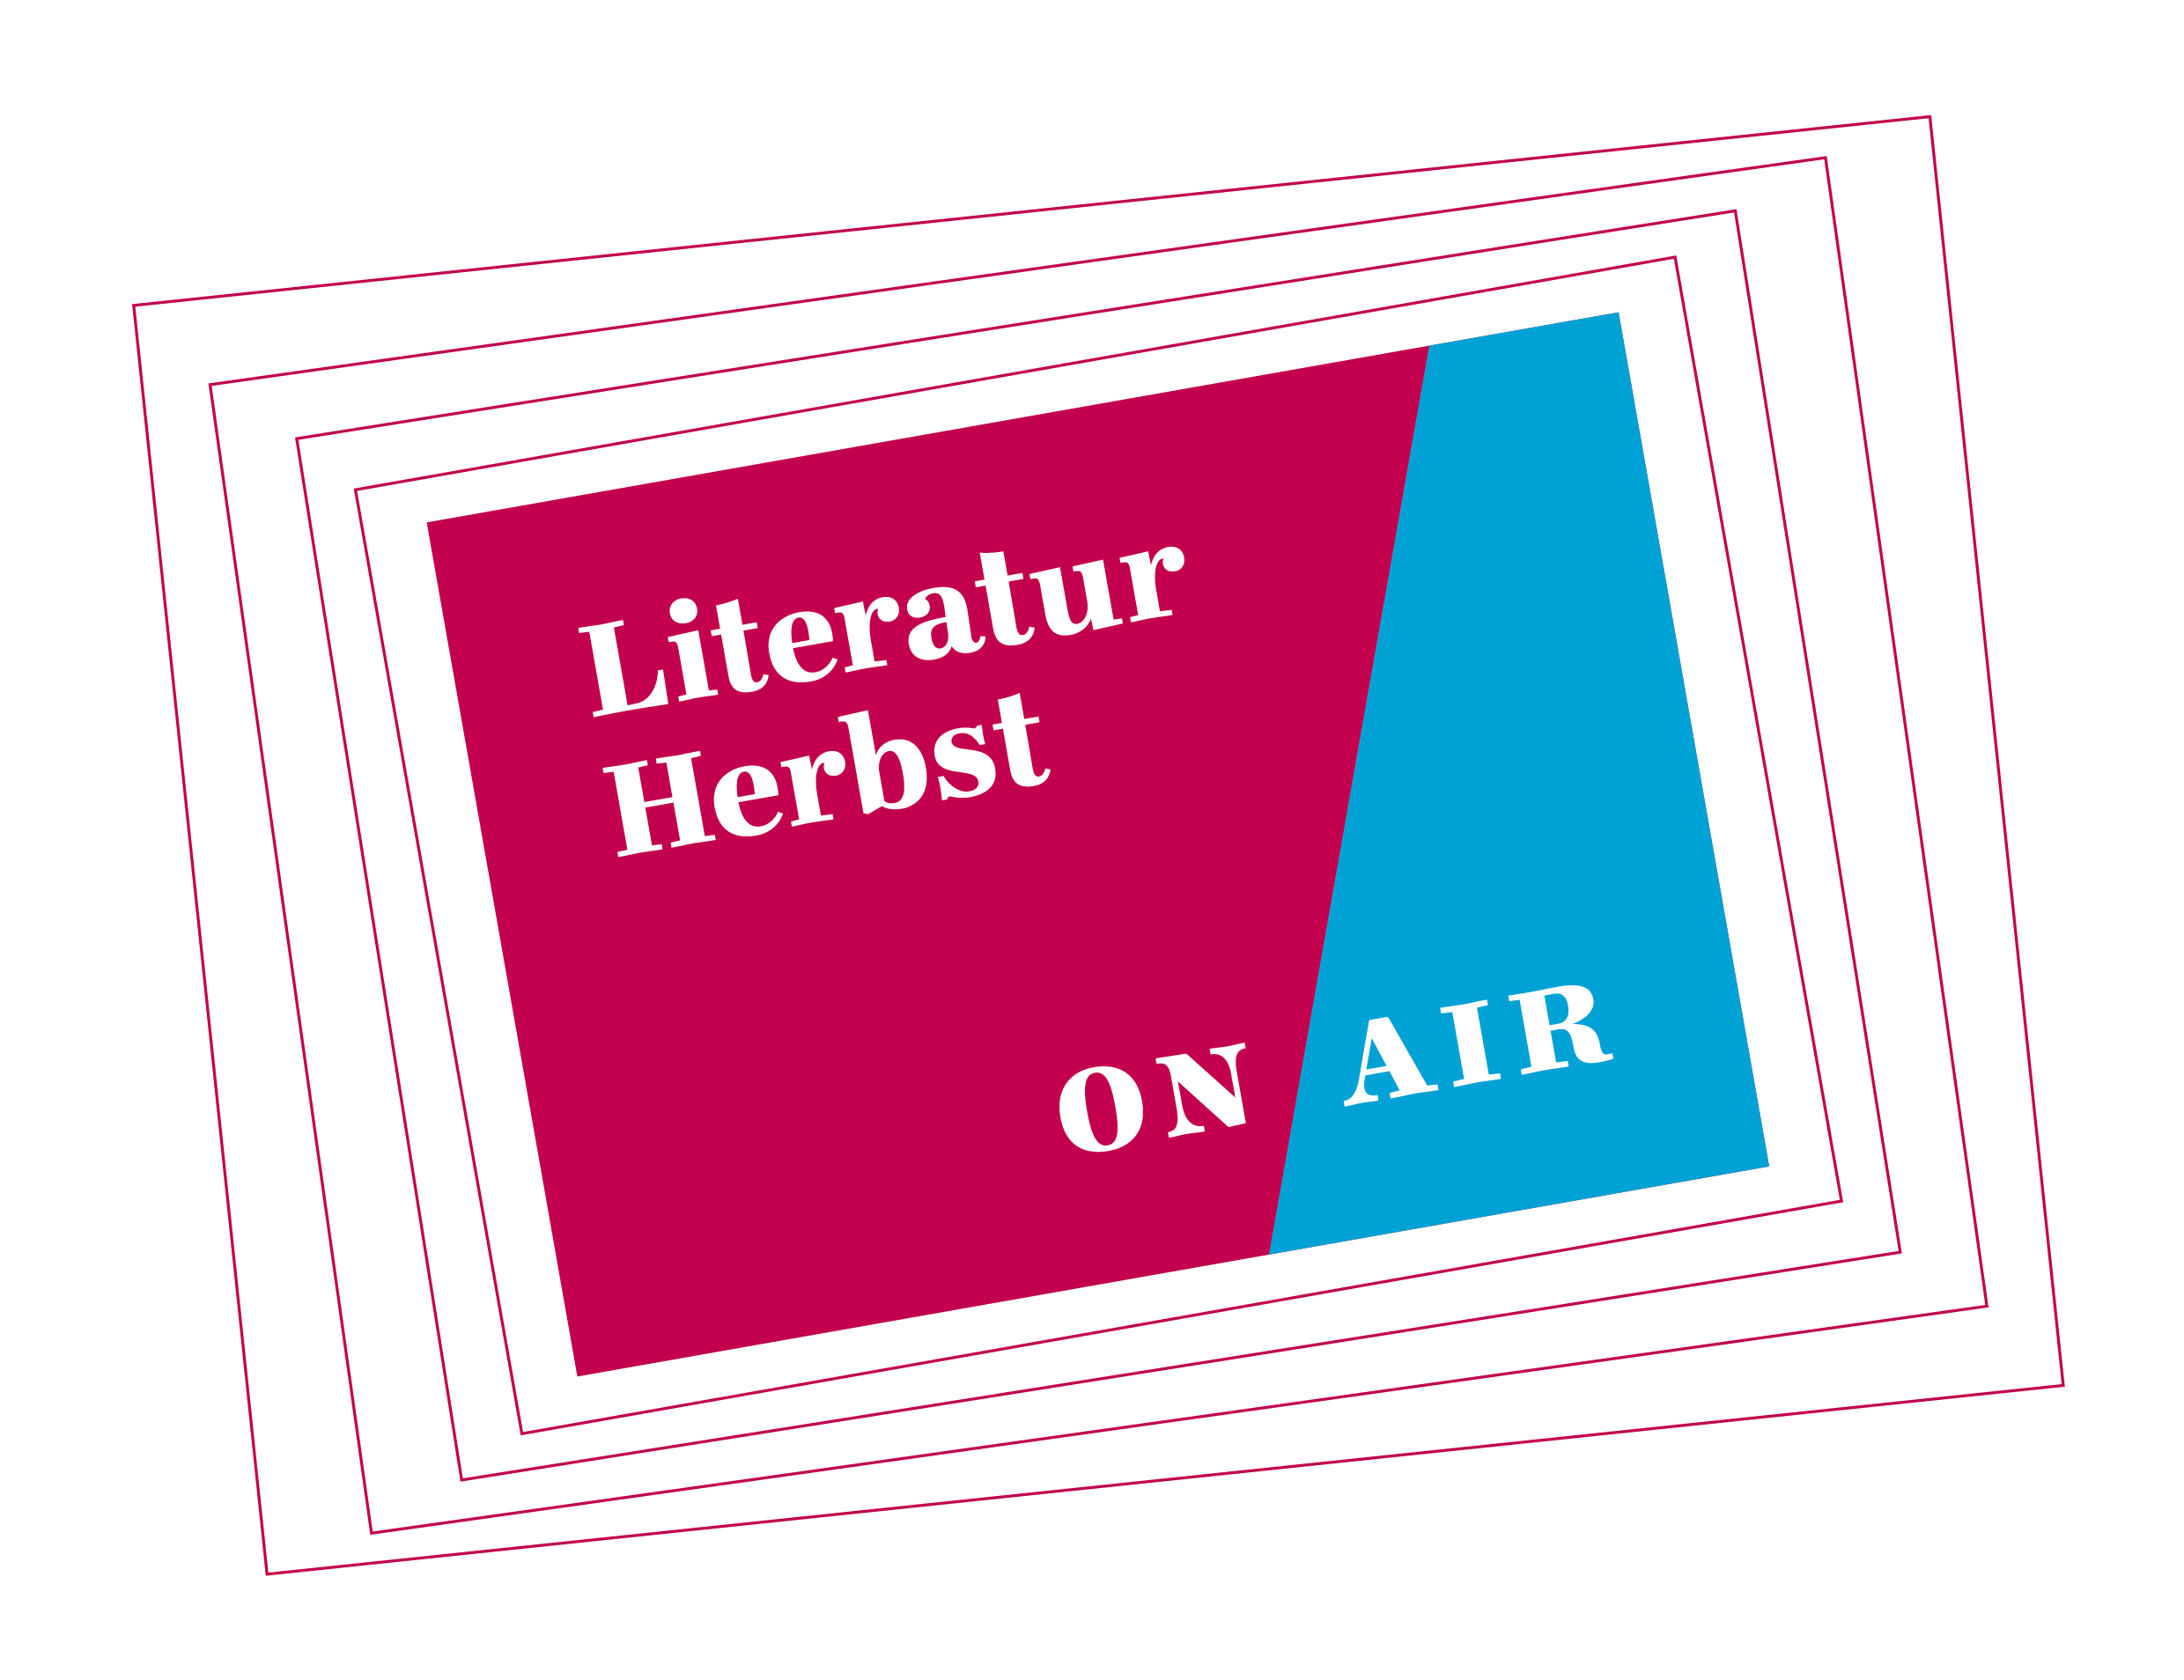 Literaturherbst ON AIR